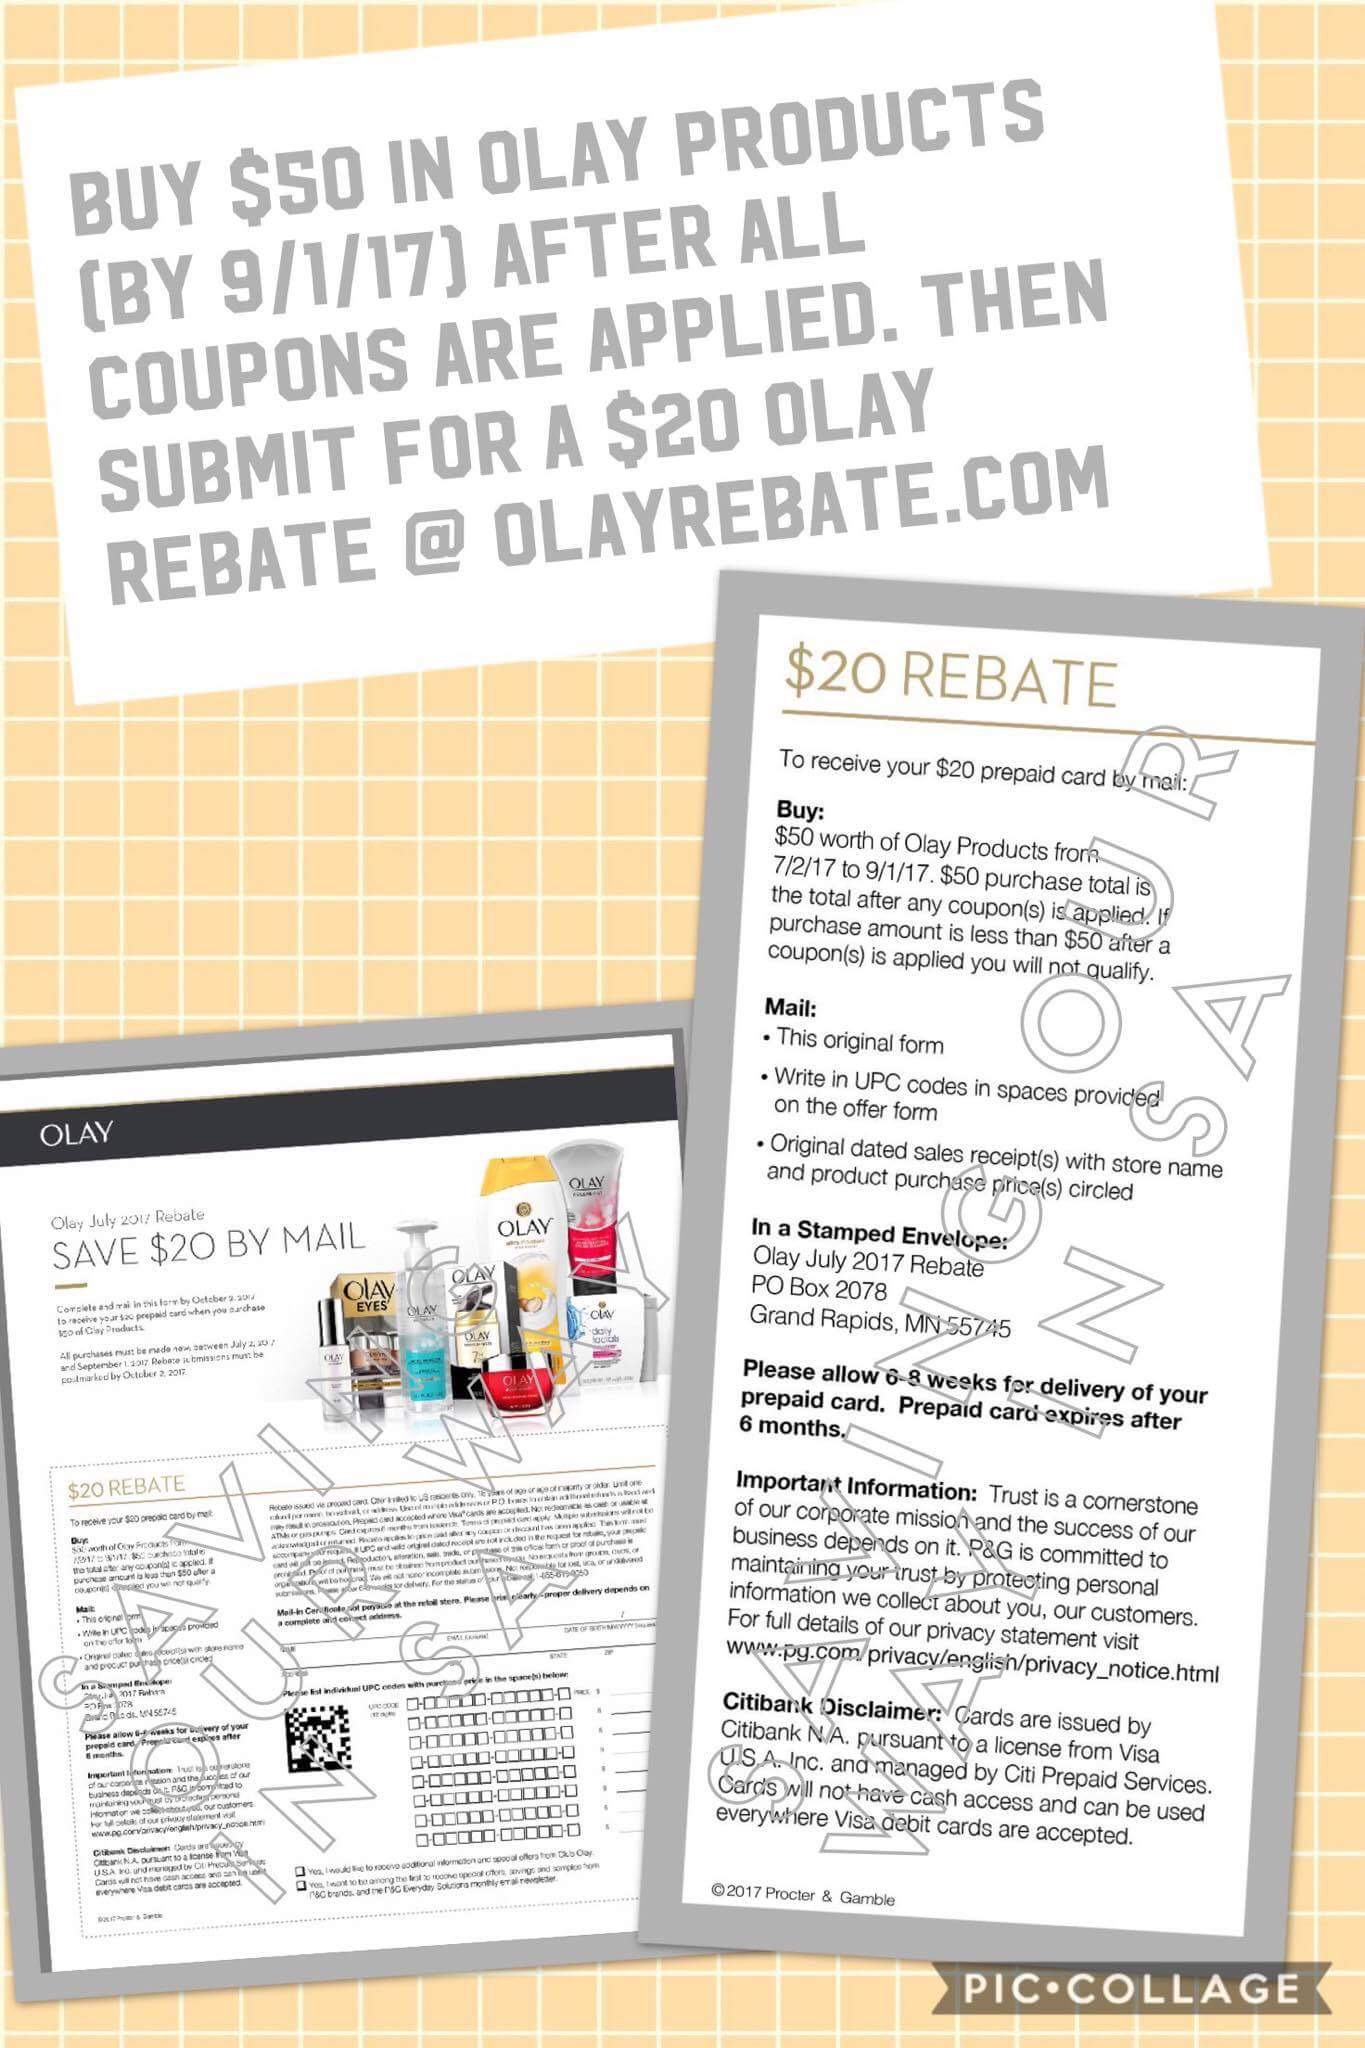 $20 Prepaid Gift Card offer from Olay! | Couponing Blogs | United